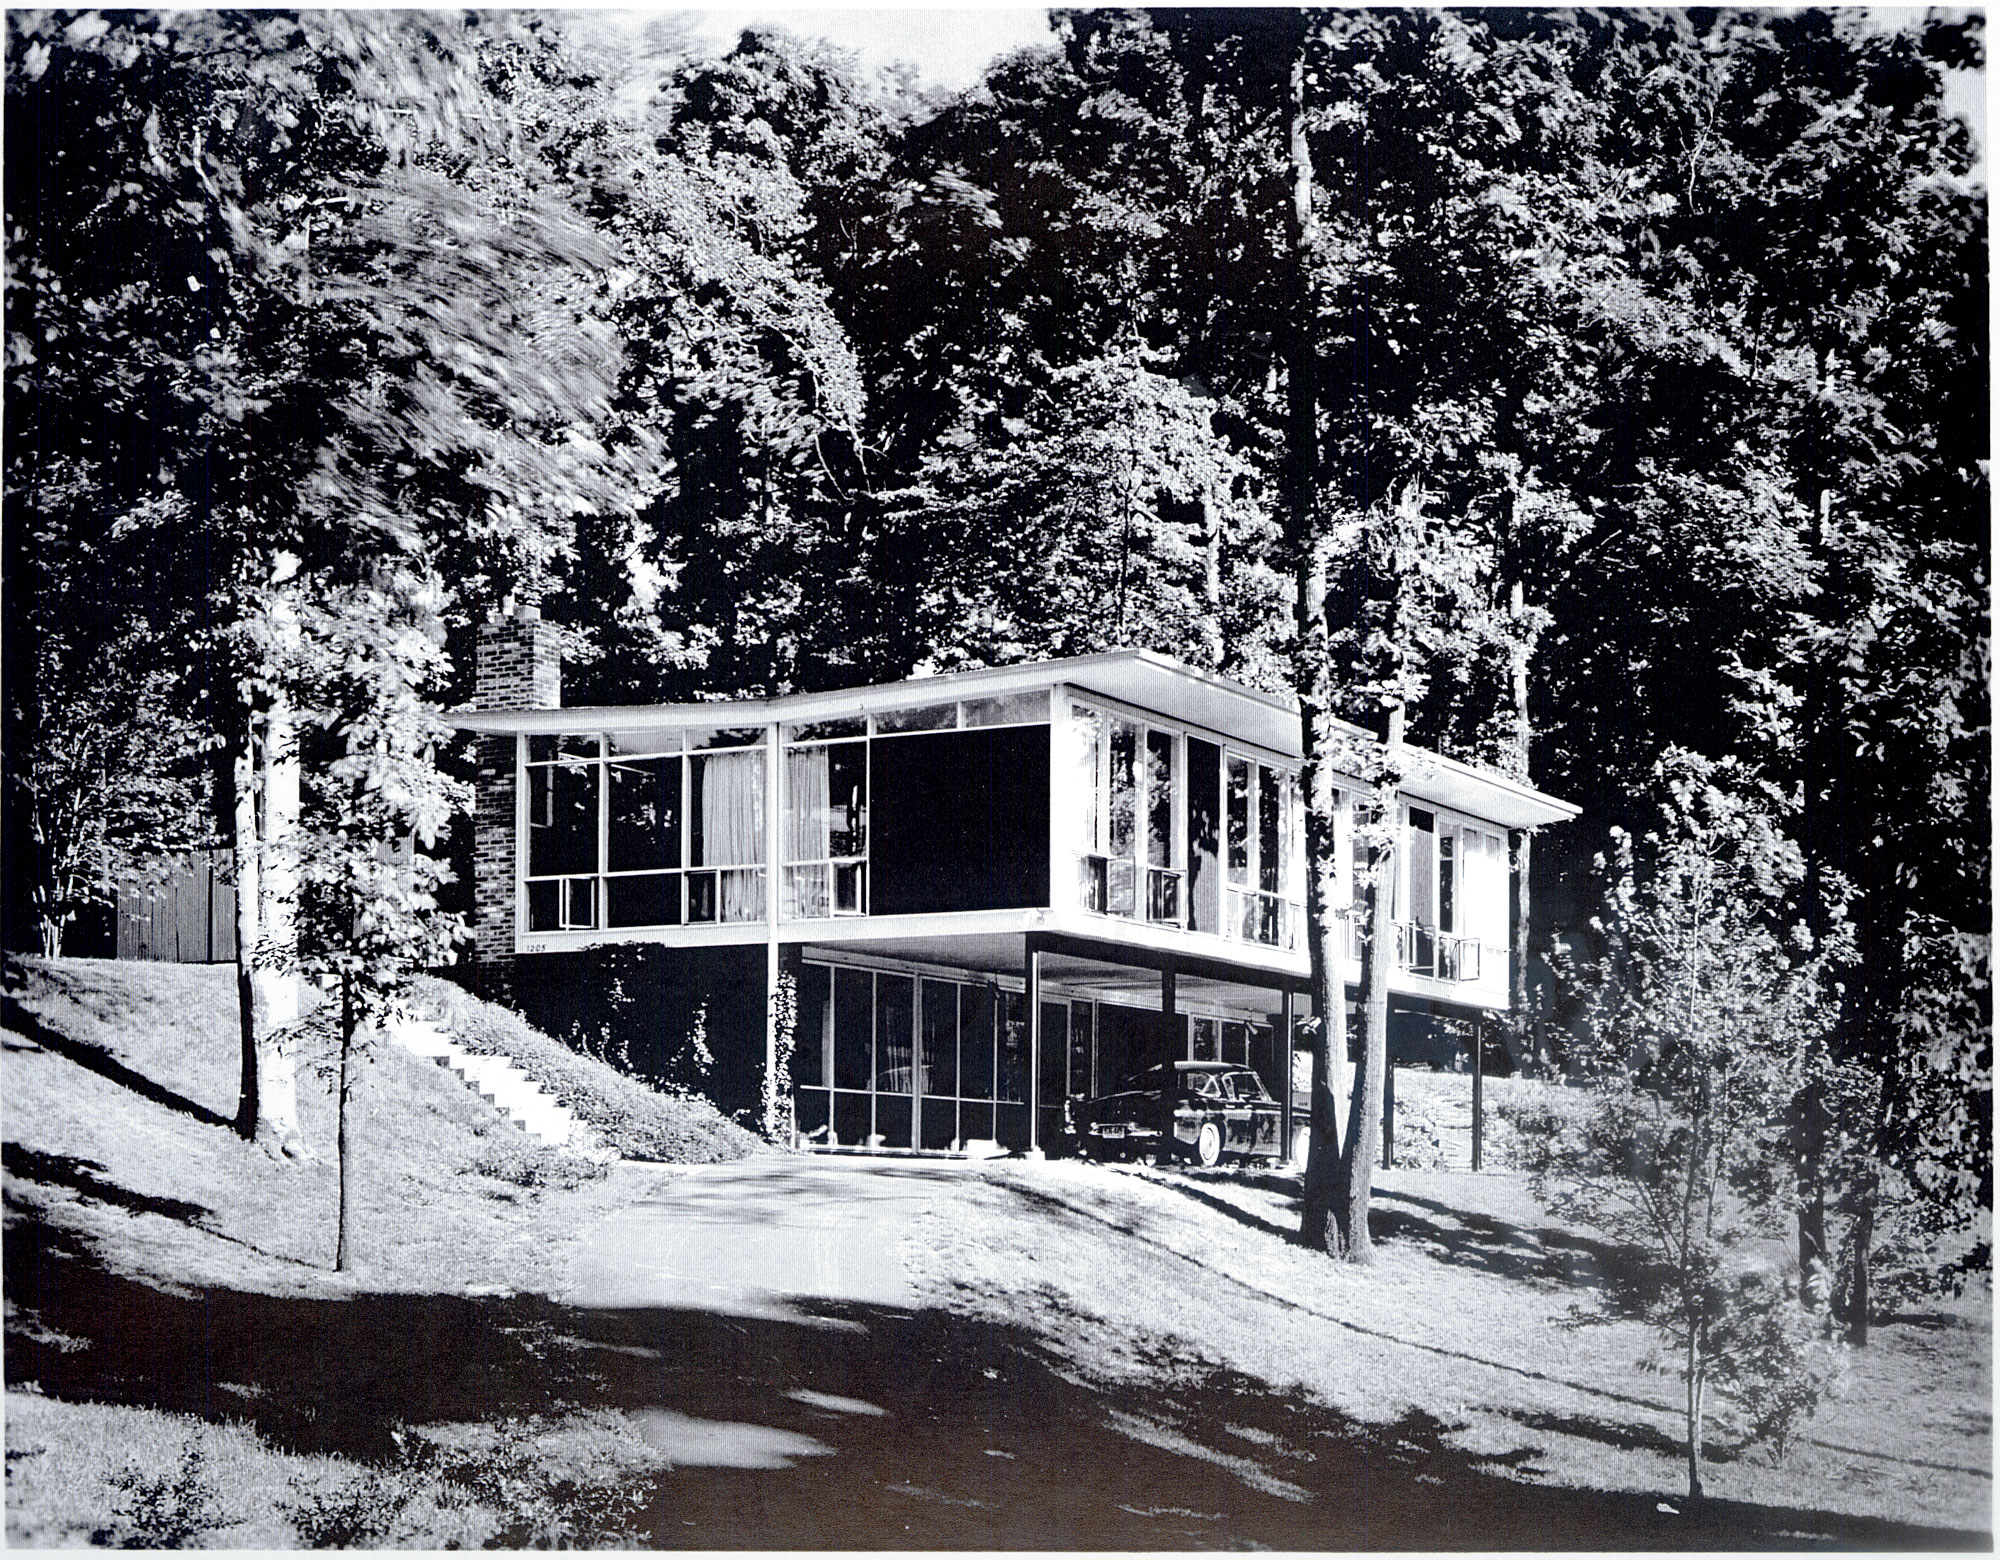 Archival Material of Charles Goodman at the National ... on 1920 style home plans, 1950 home design, retro house plans, minimal traditional house plans, 1950 home interiors, 1950 style home plans,